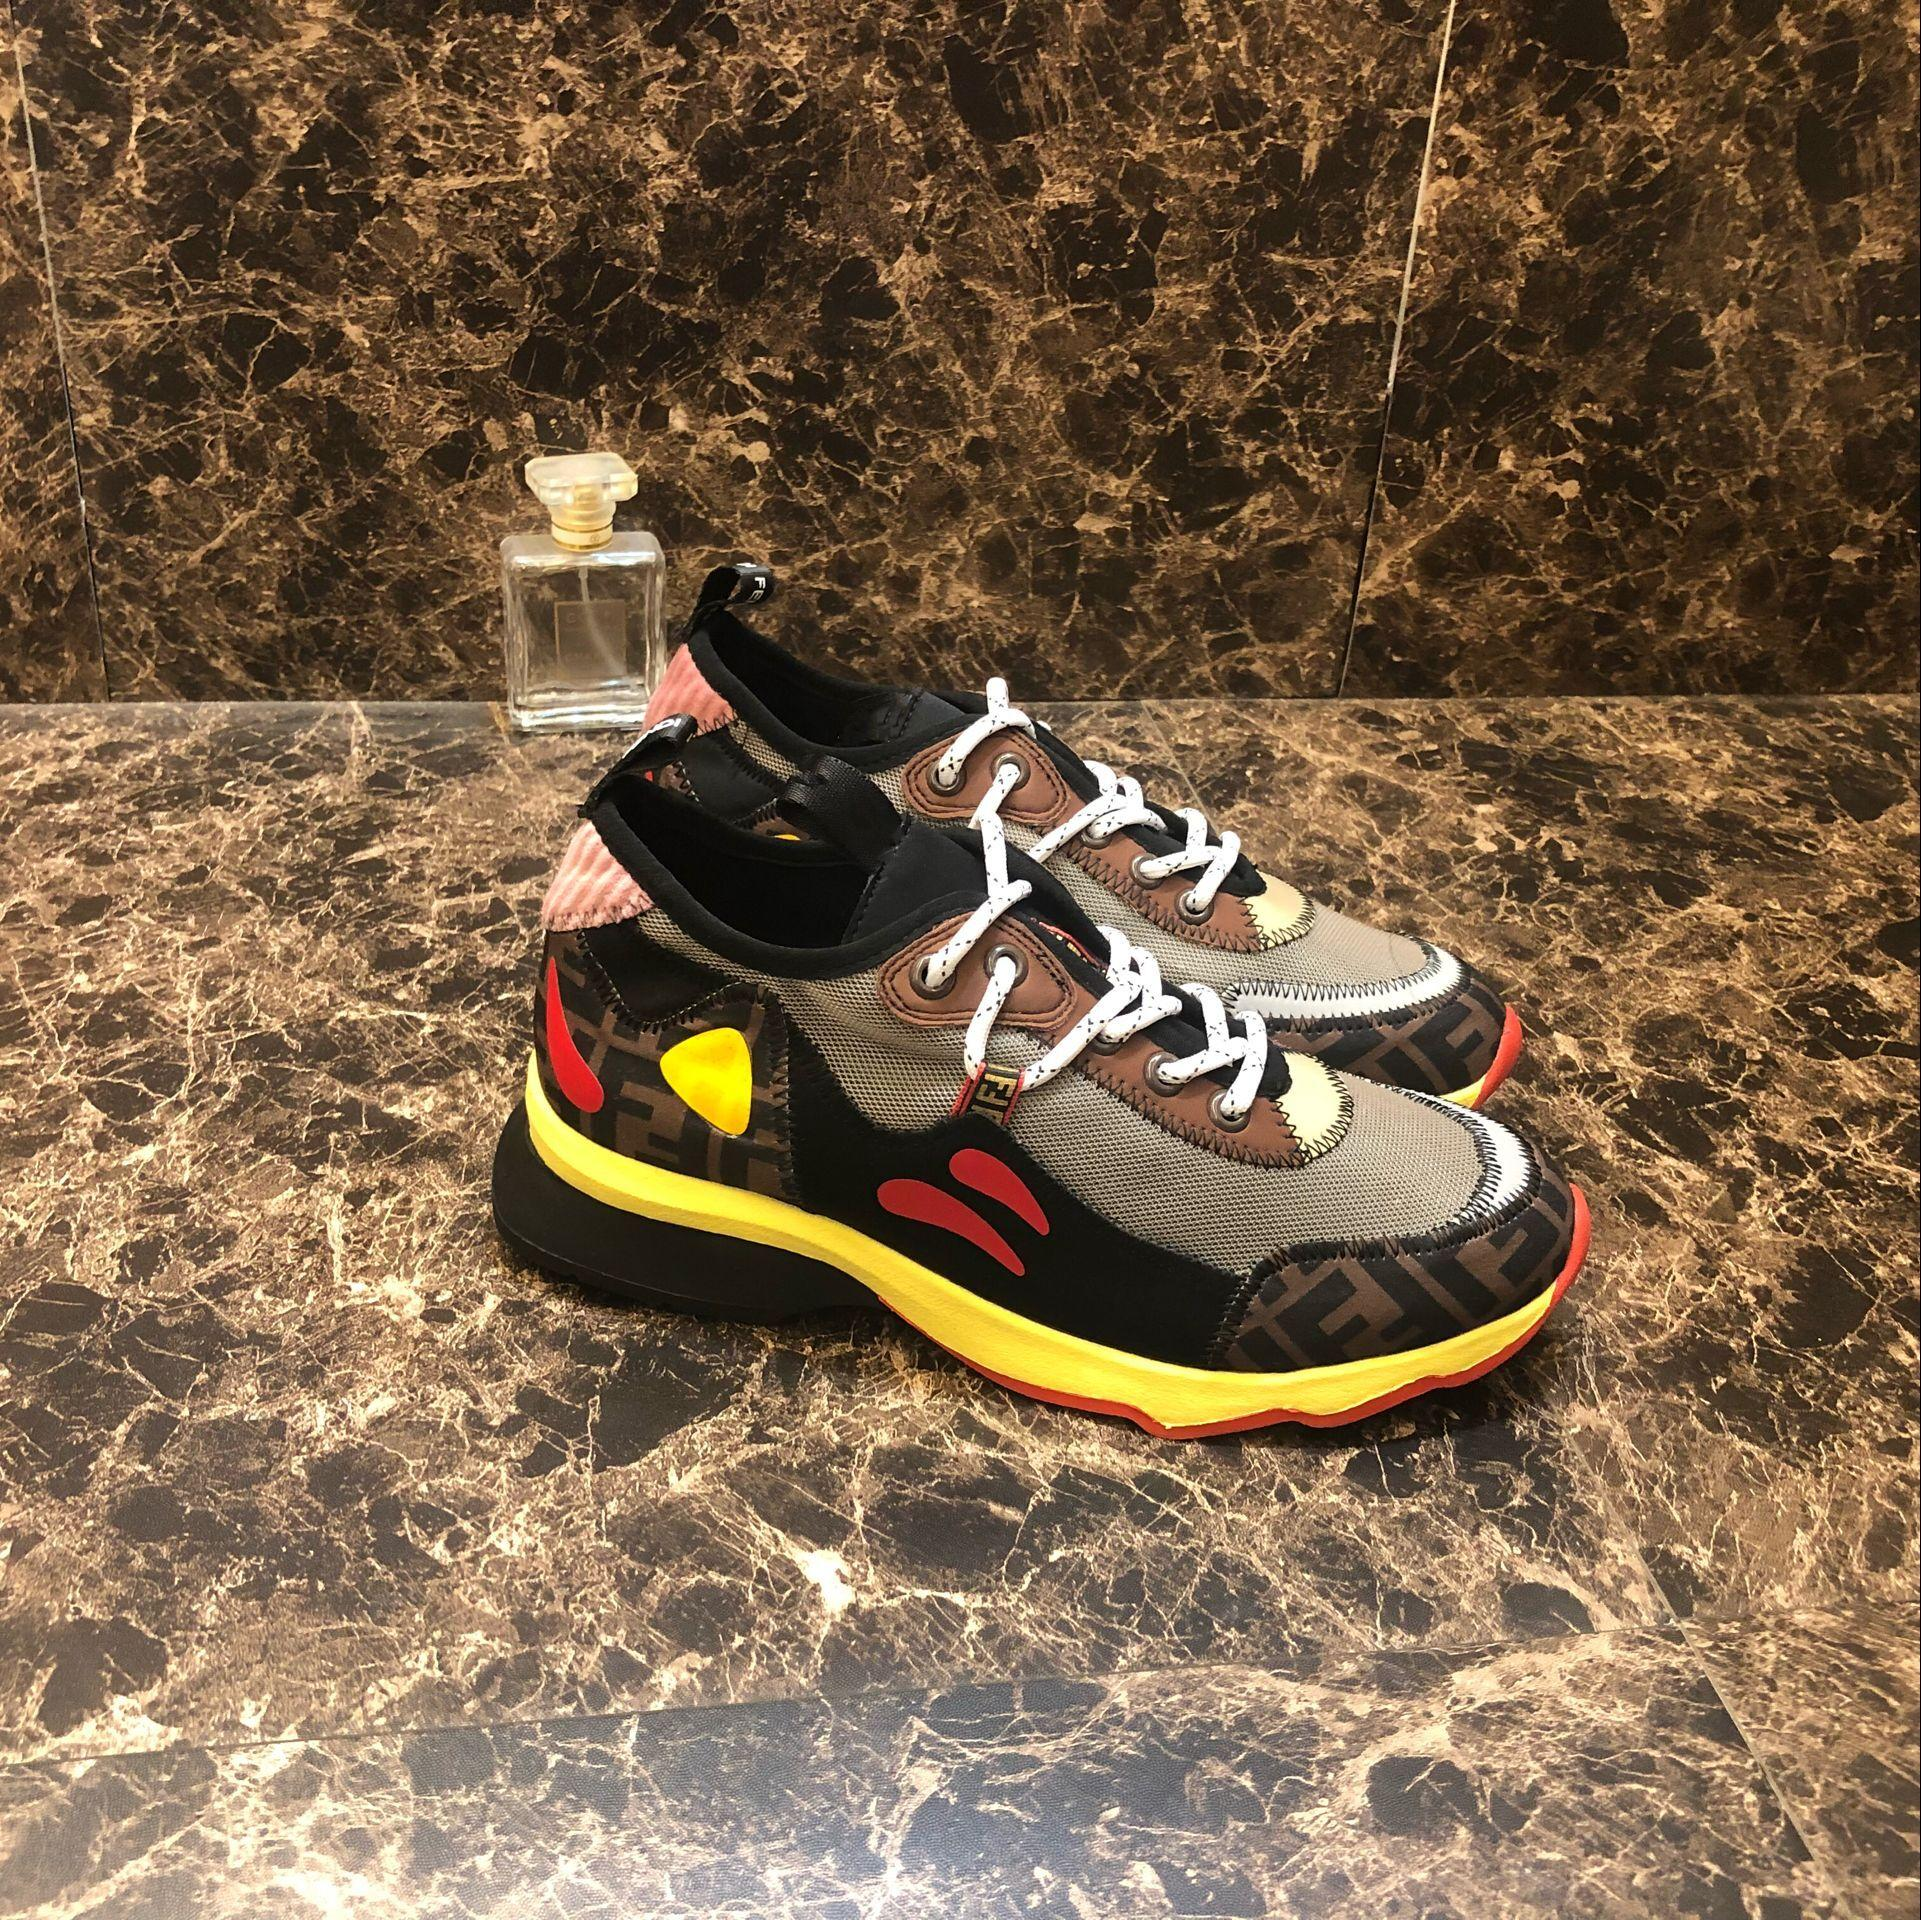 927bcd9cd932 ... Fendi Freedom FF Patchwork Sneakers Fendi sneakers in mesh